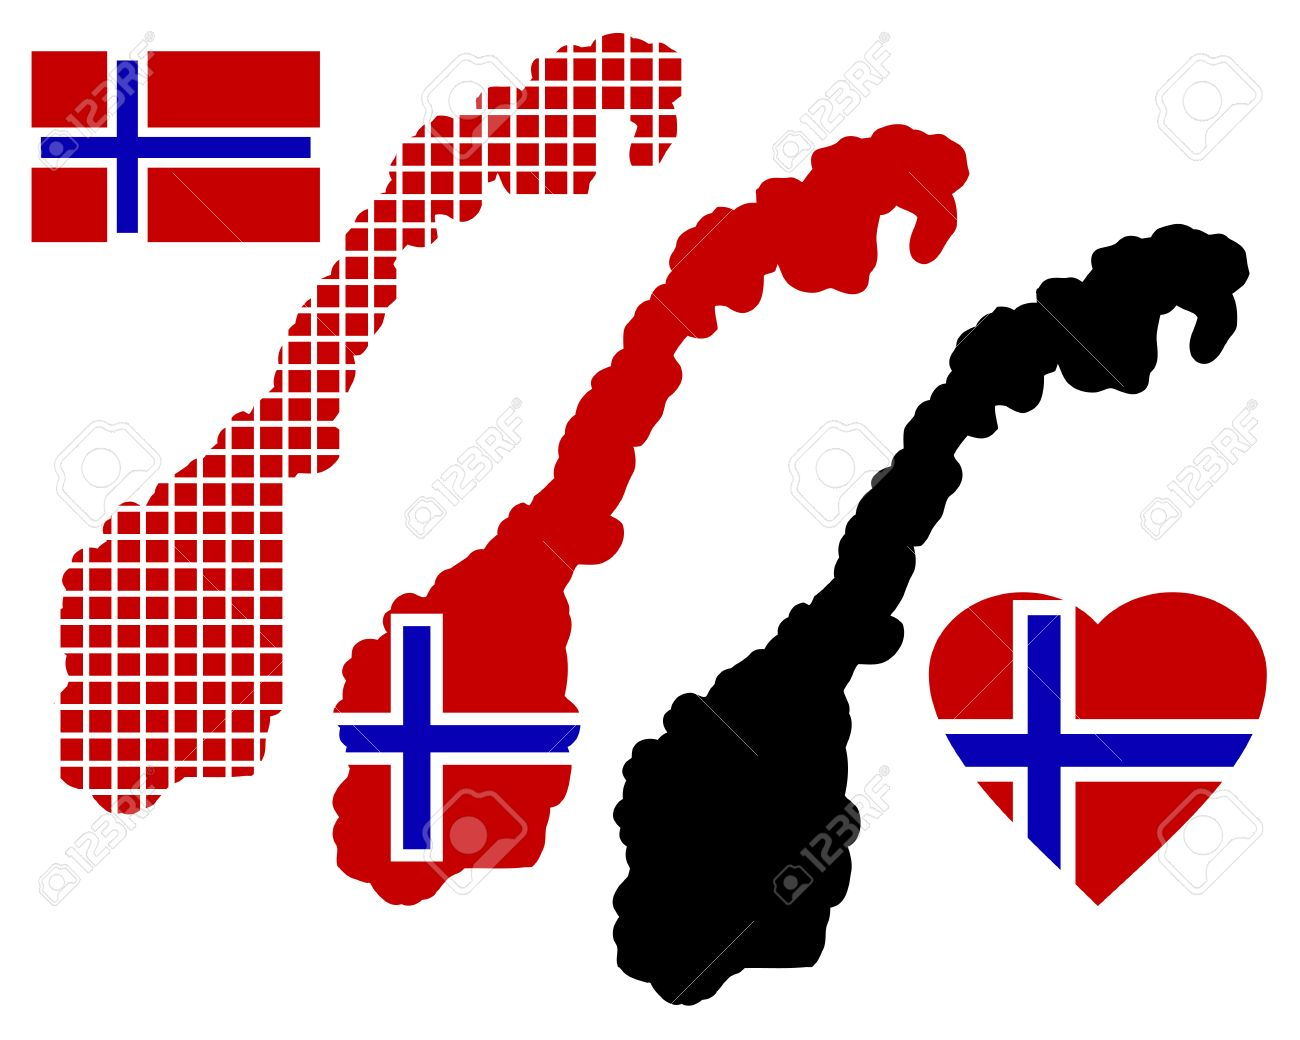 Norway Map In Different Colors And Symbols On A White Background